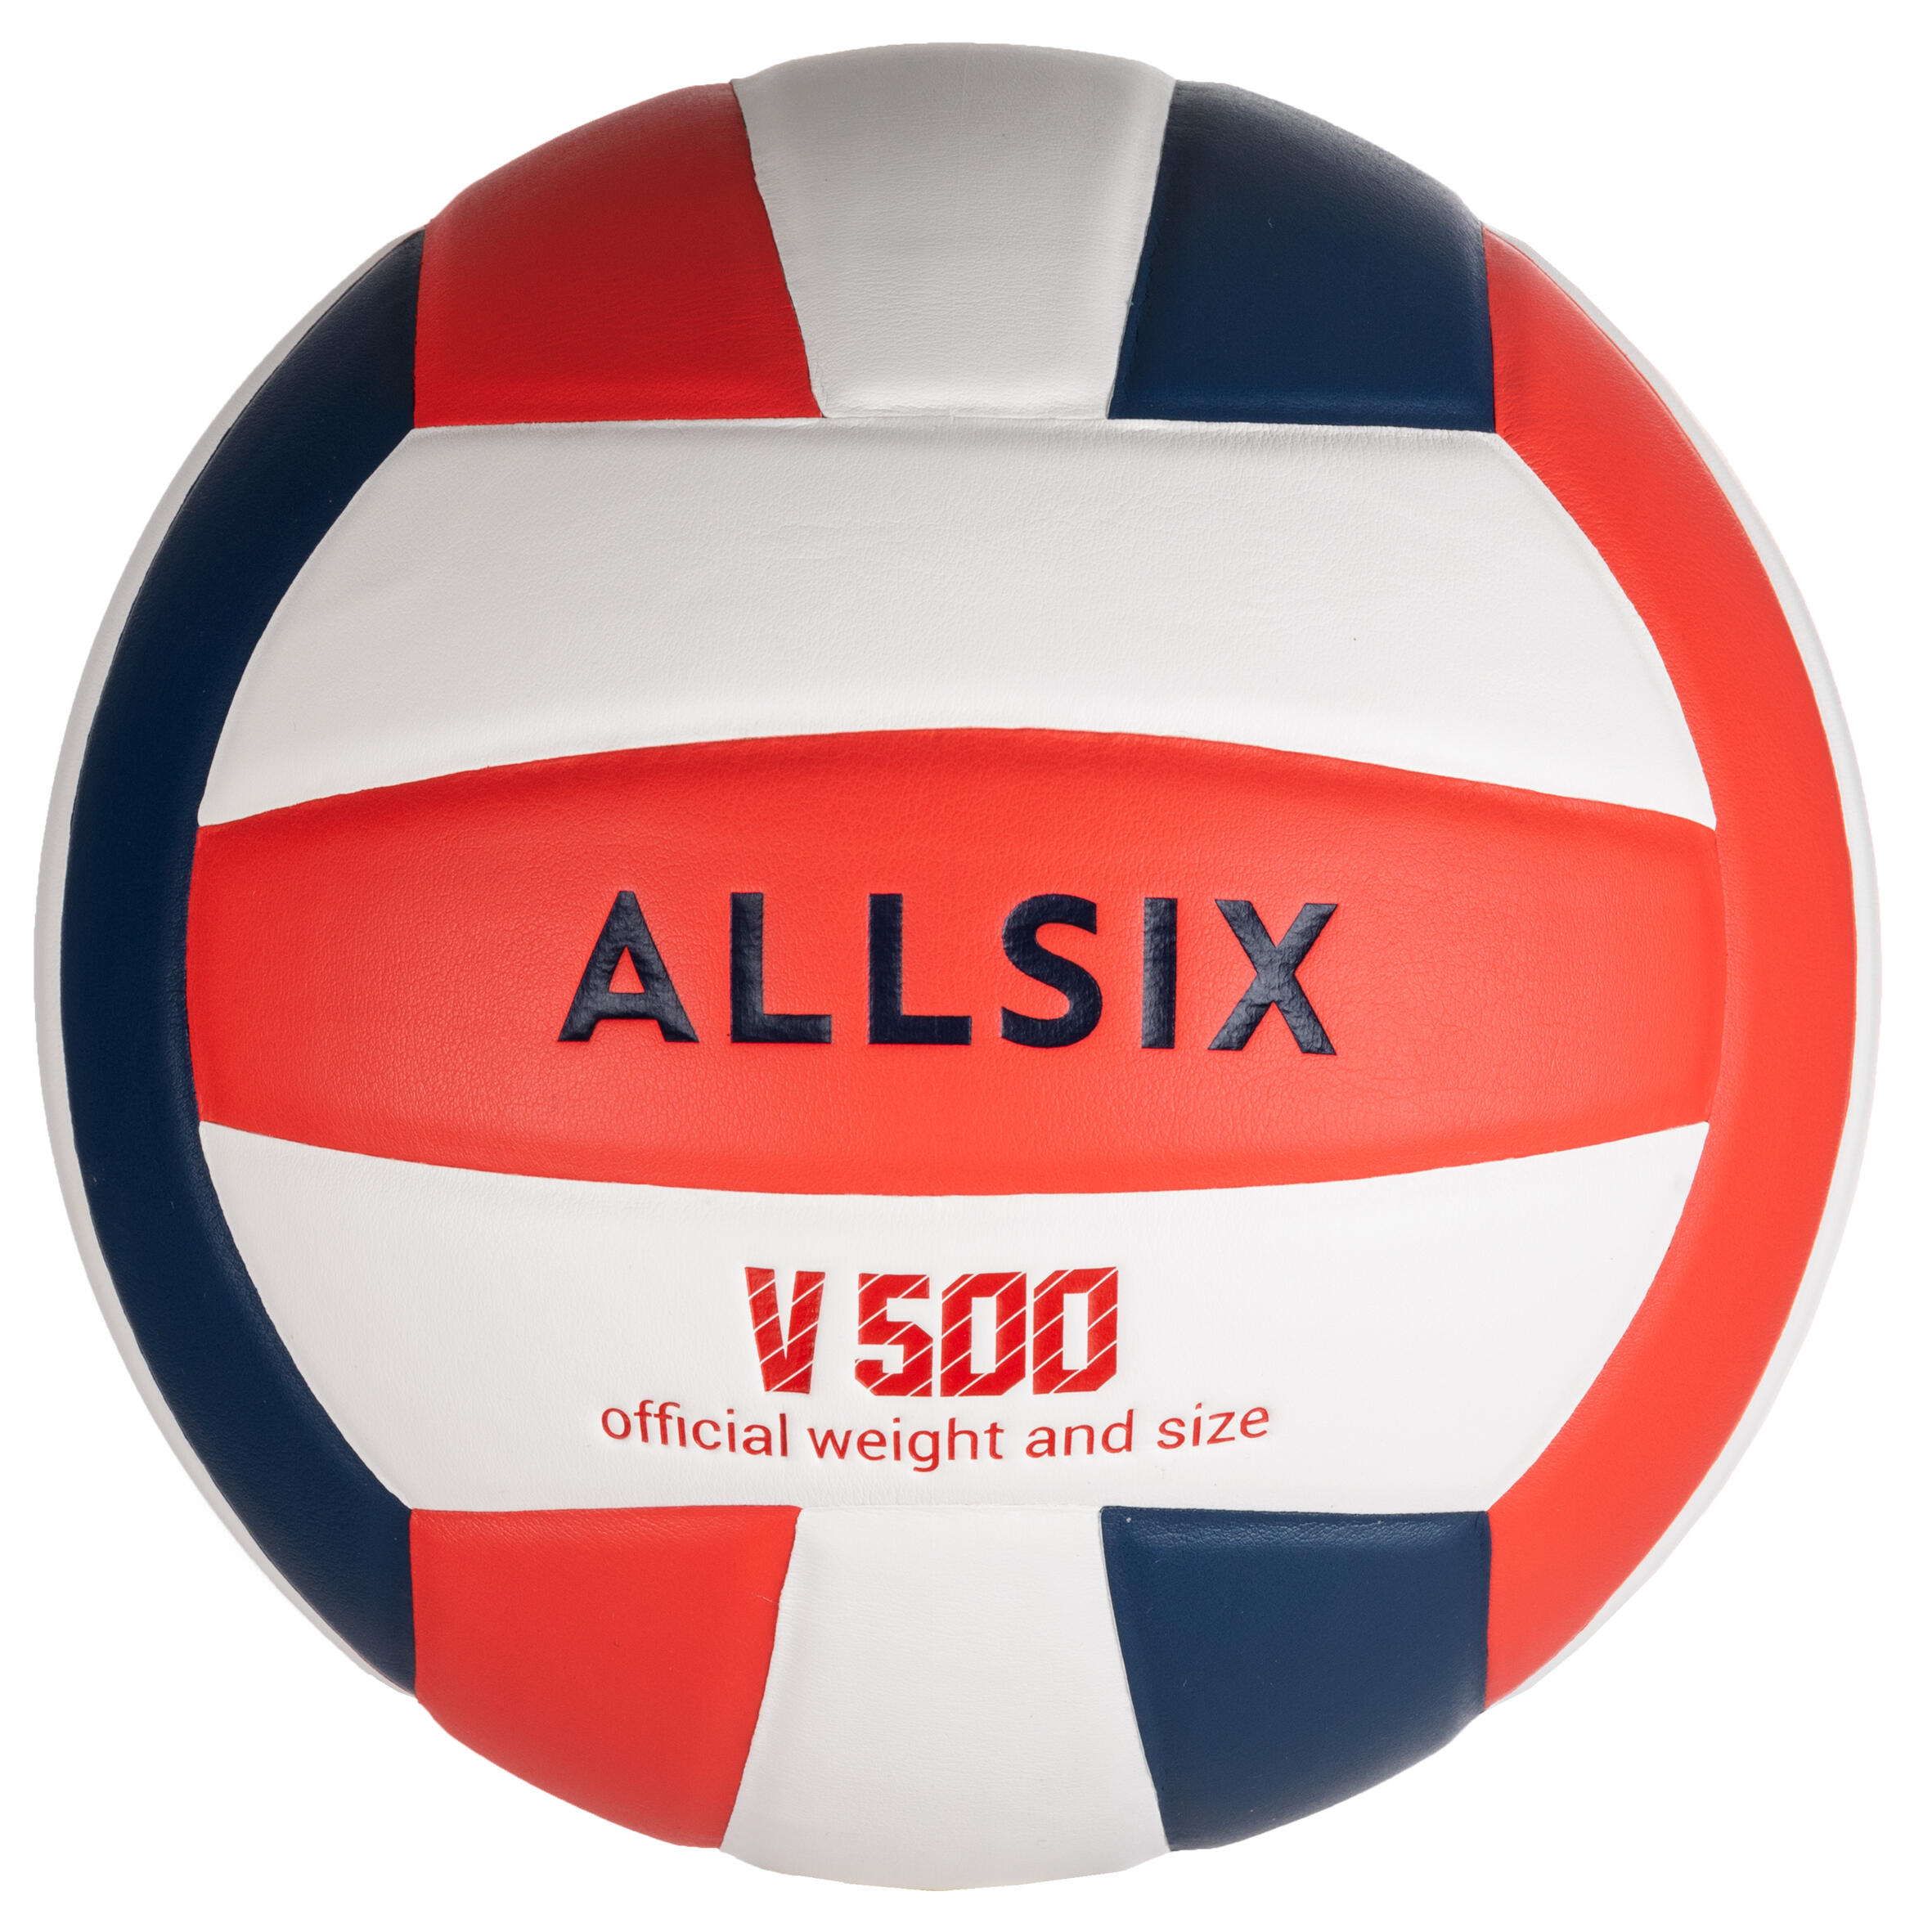 Minge Volei V500 imagine